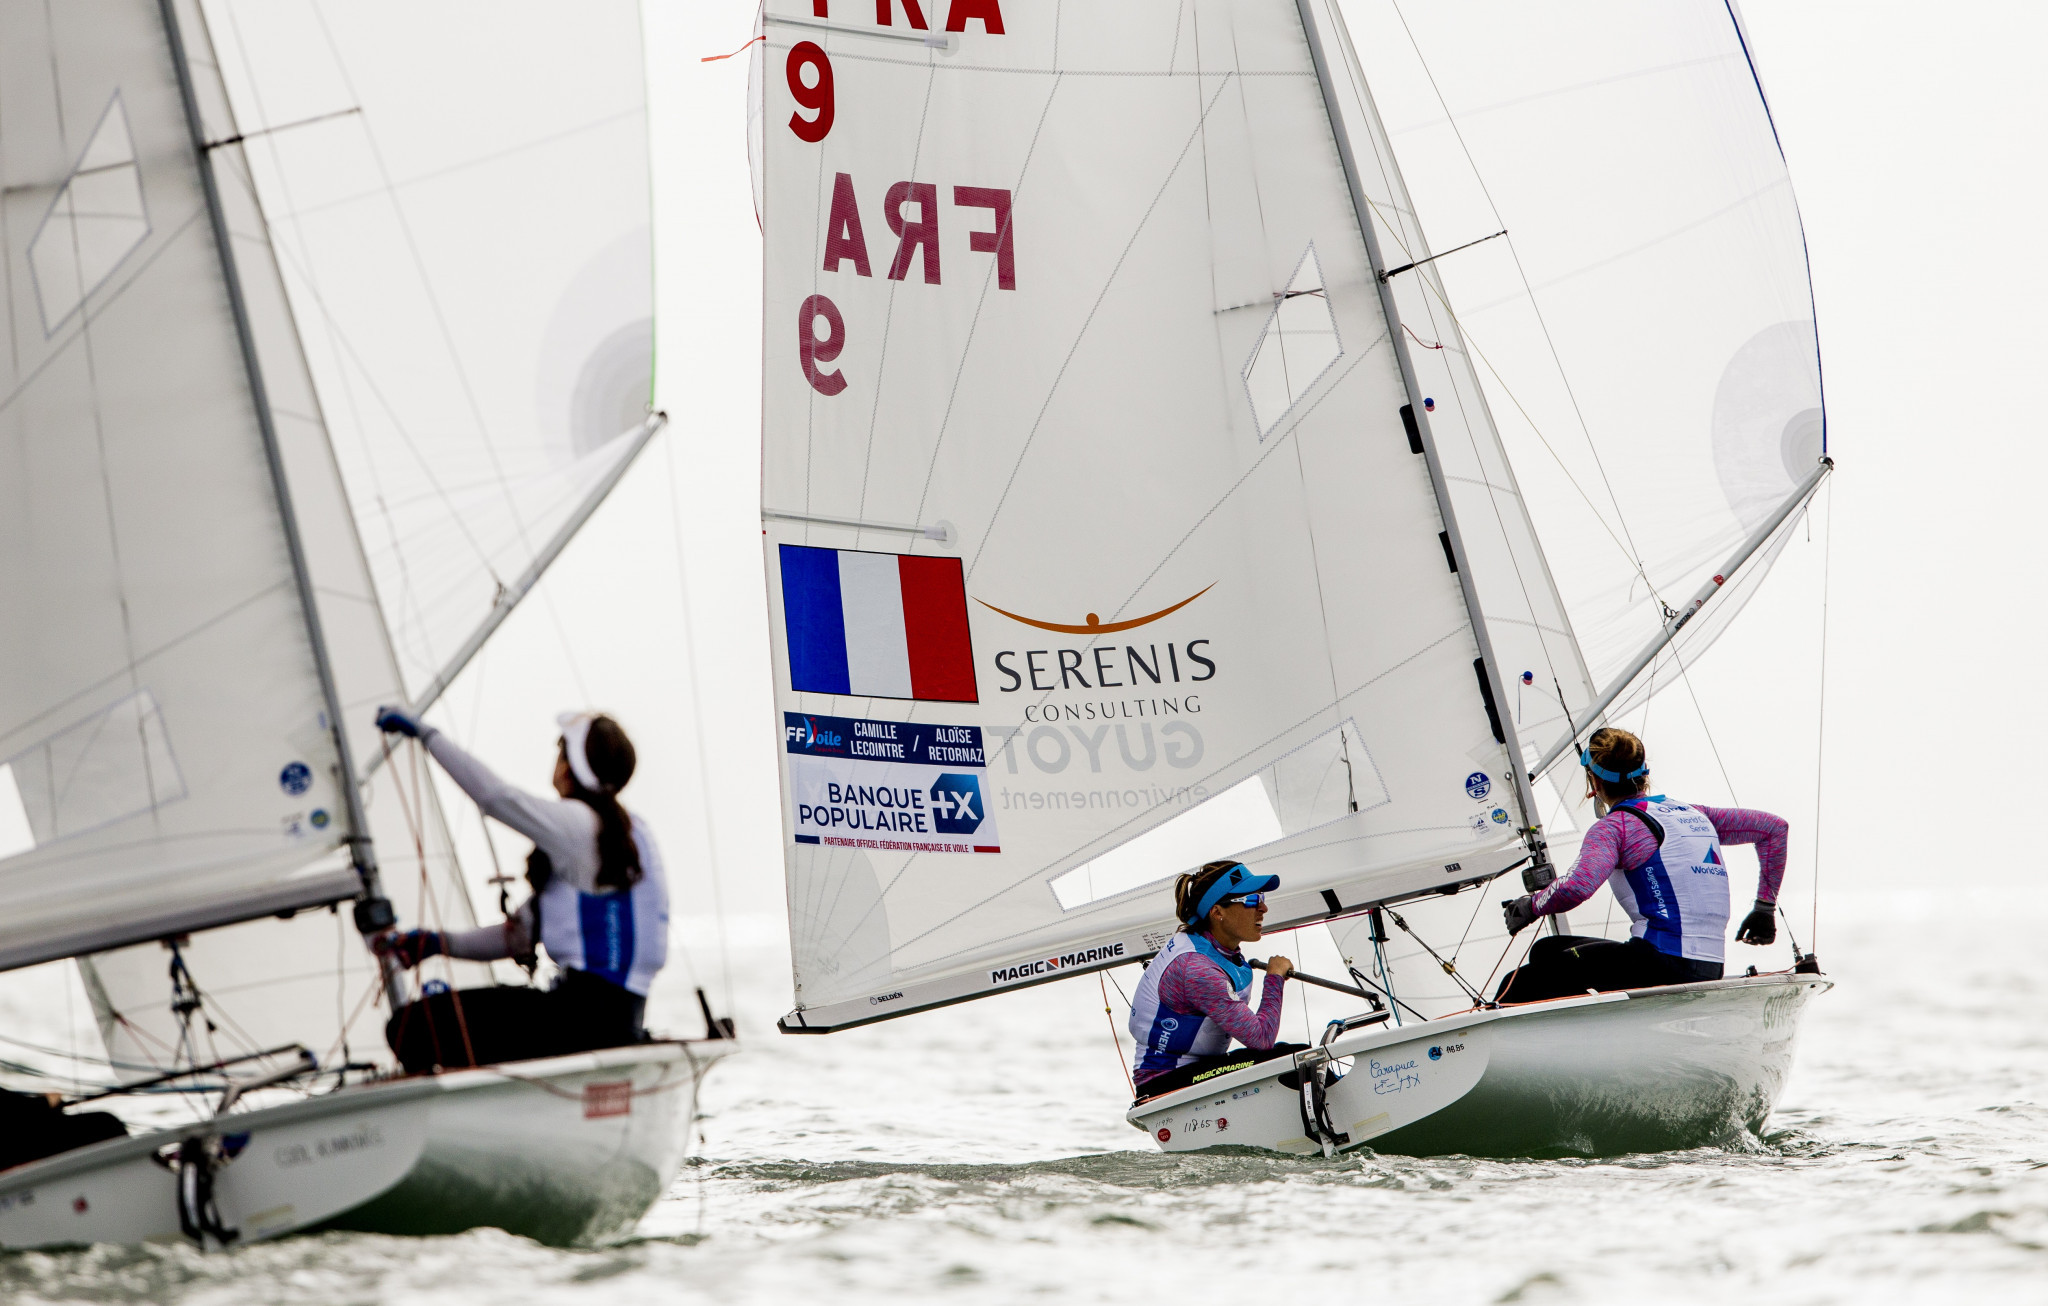 Camille Lecointre and Aloise Retornaz started well in Miami ©World Sailing